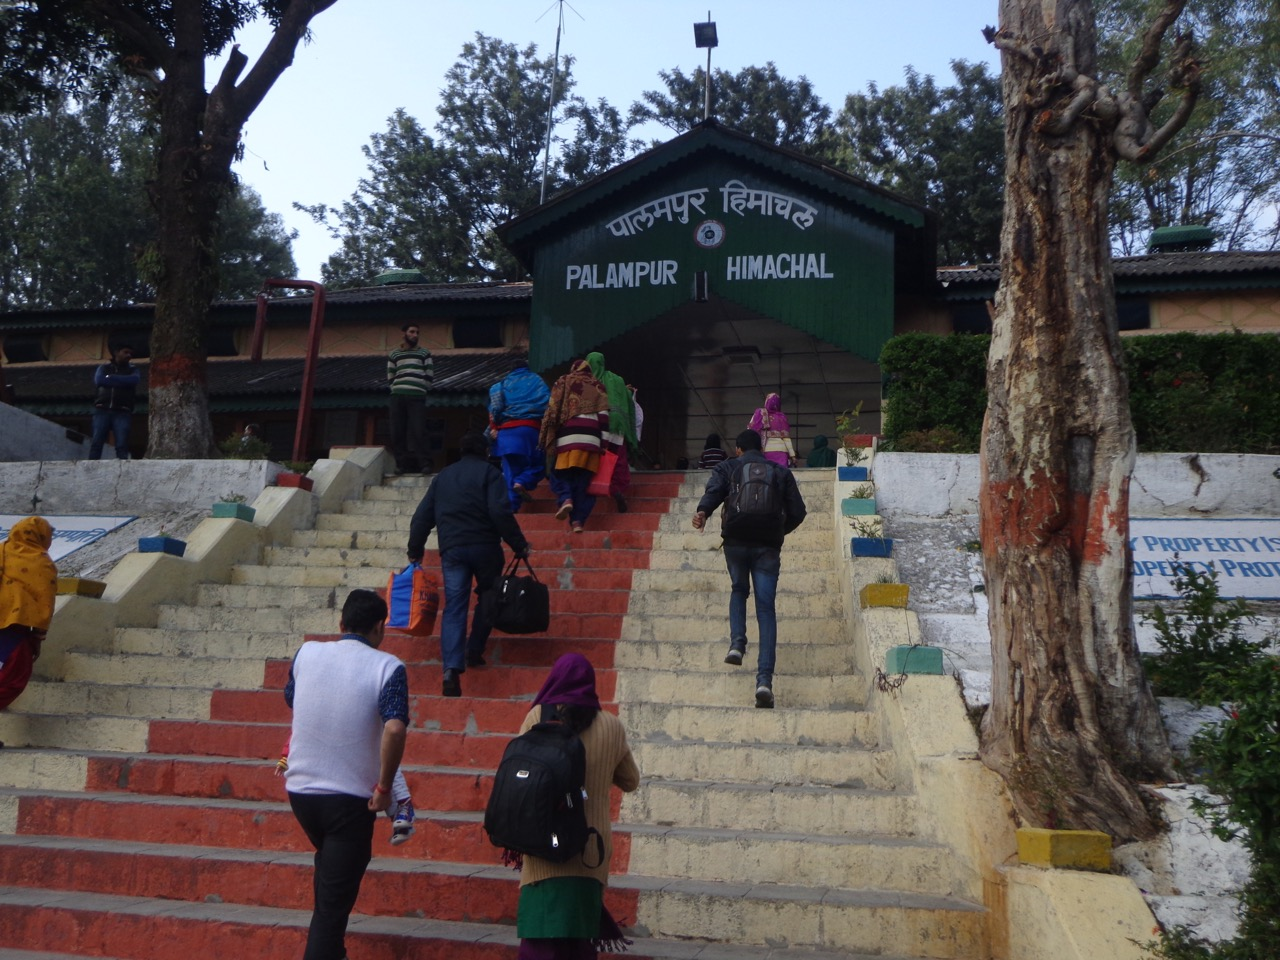 Palampur railway station is about 5 km from Palampur township.